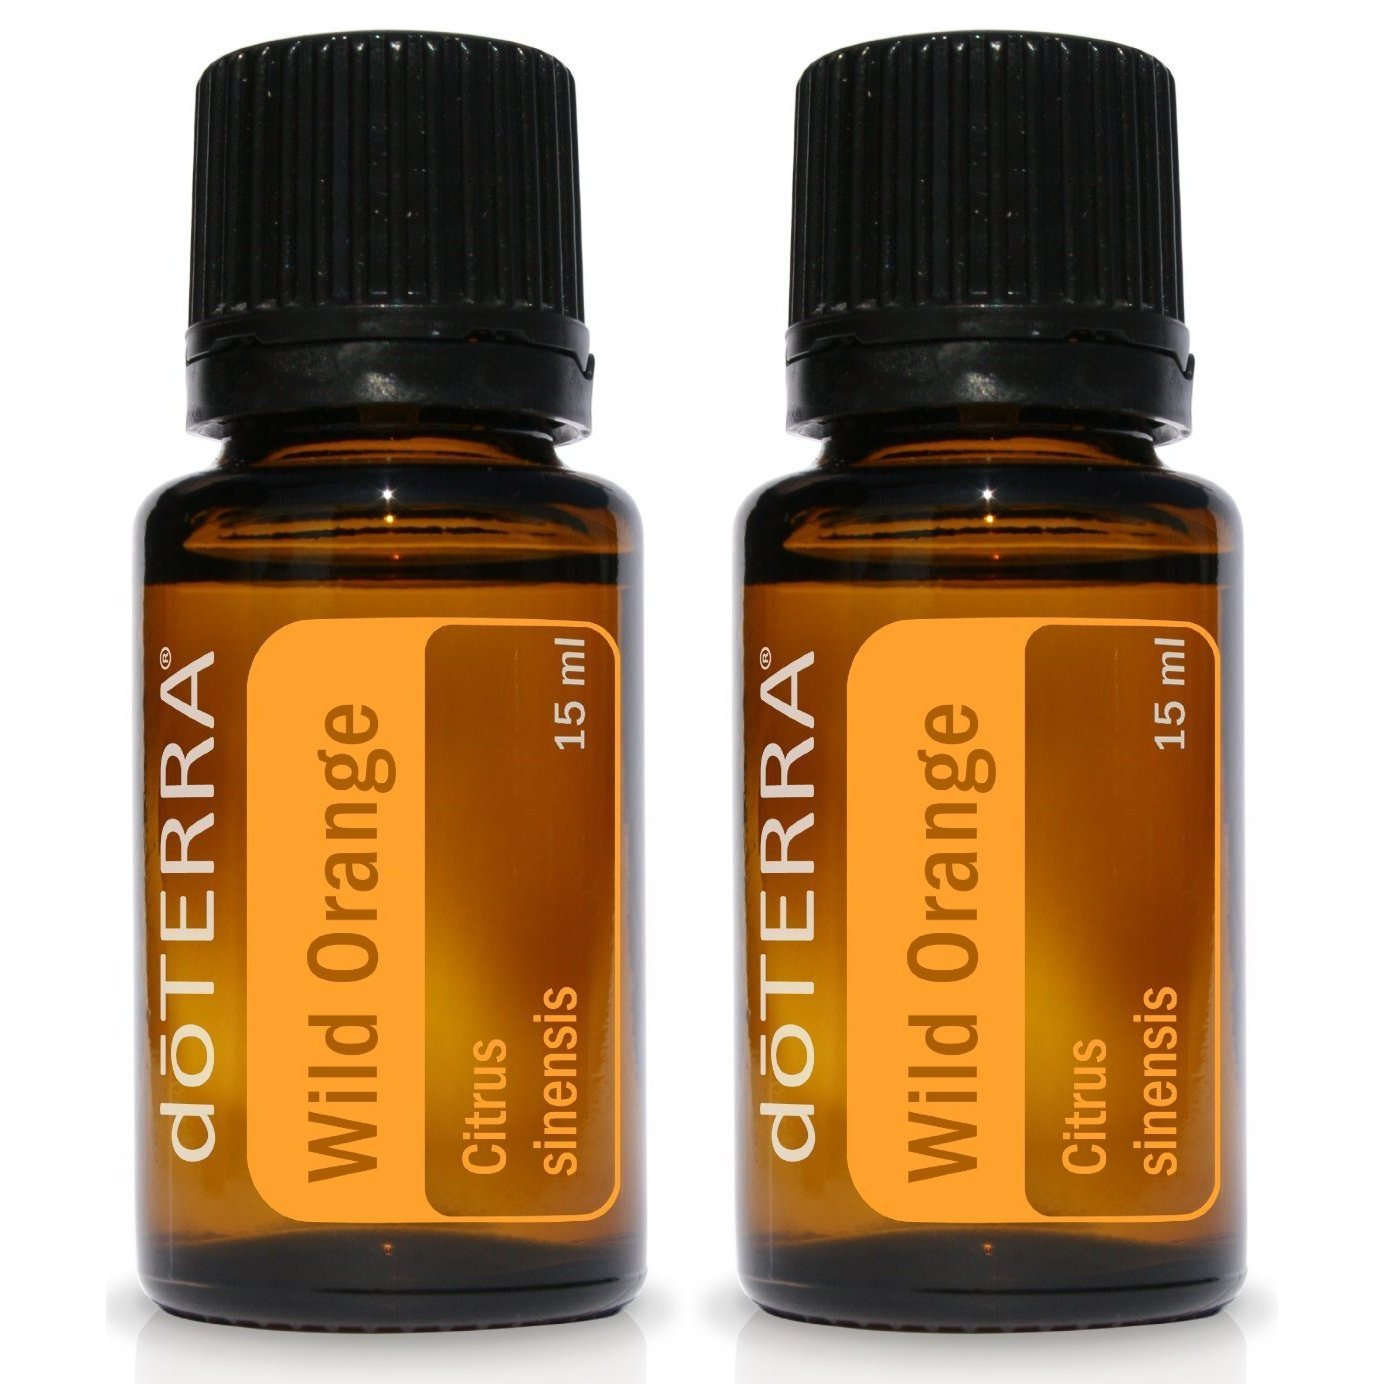 doTERRA Wild Orange Essential Oil 15 ml by doTERRA, pack of 2